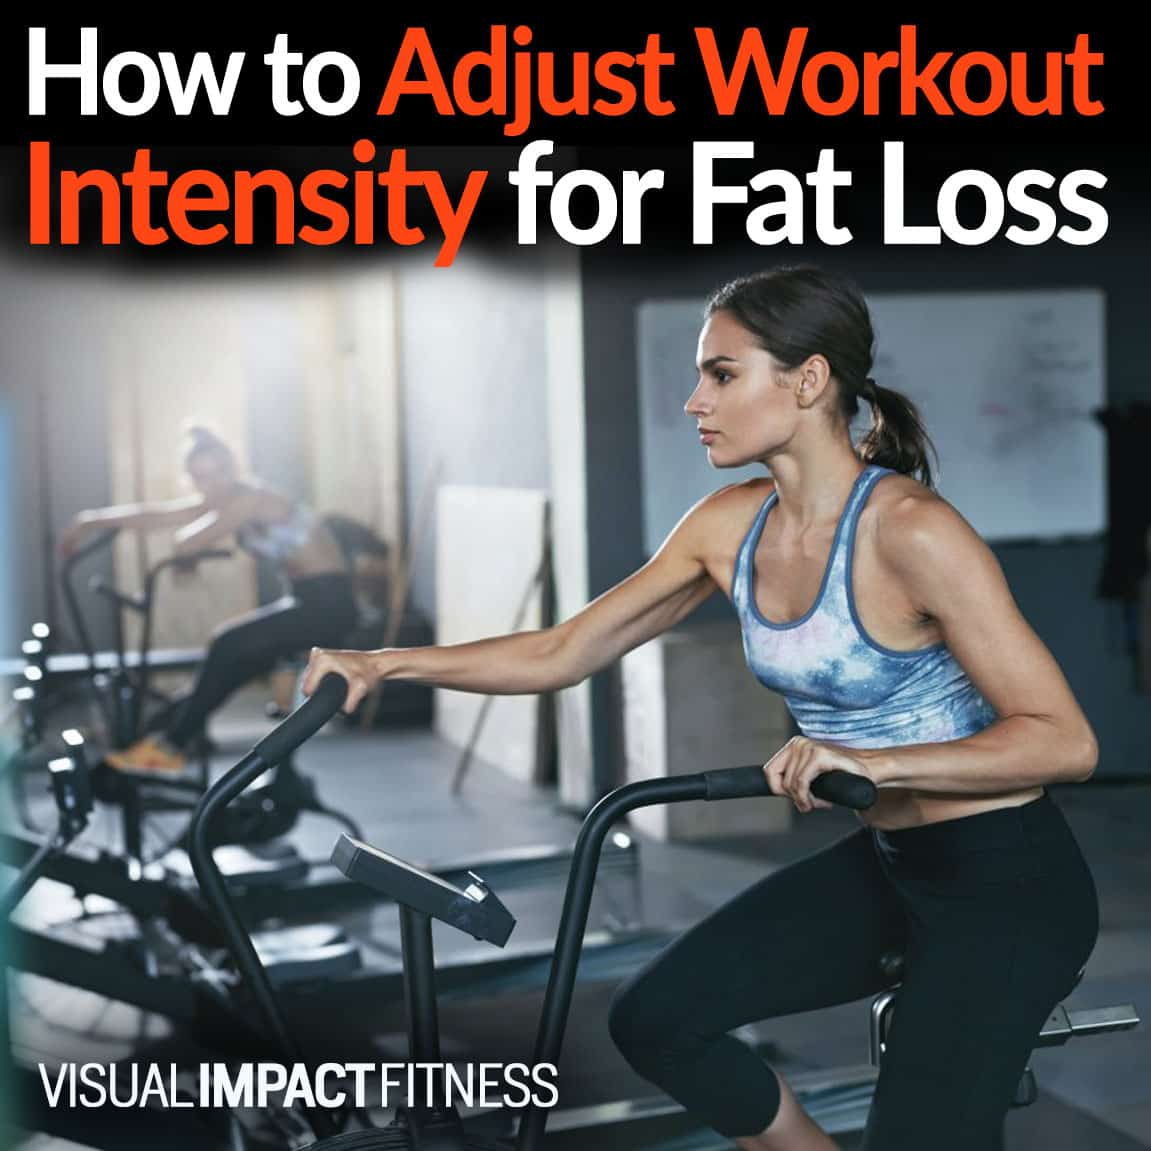 How to Adjust Workout Intensity for Fat Loss